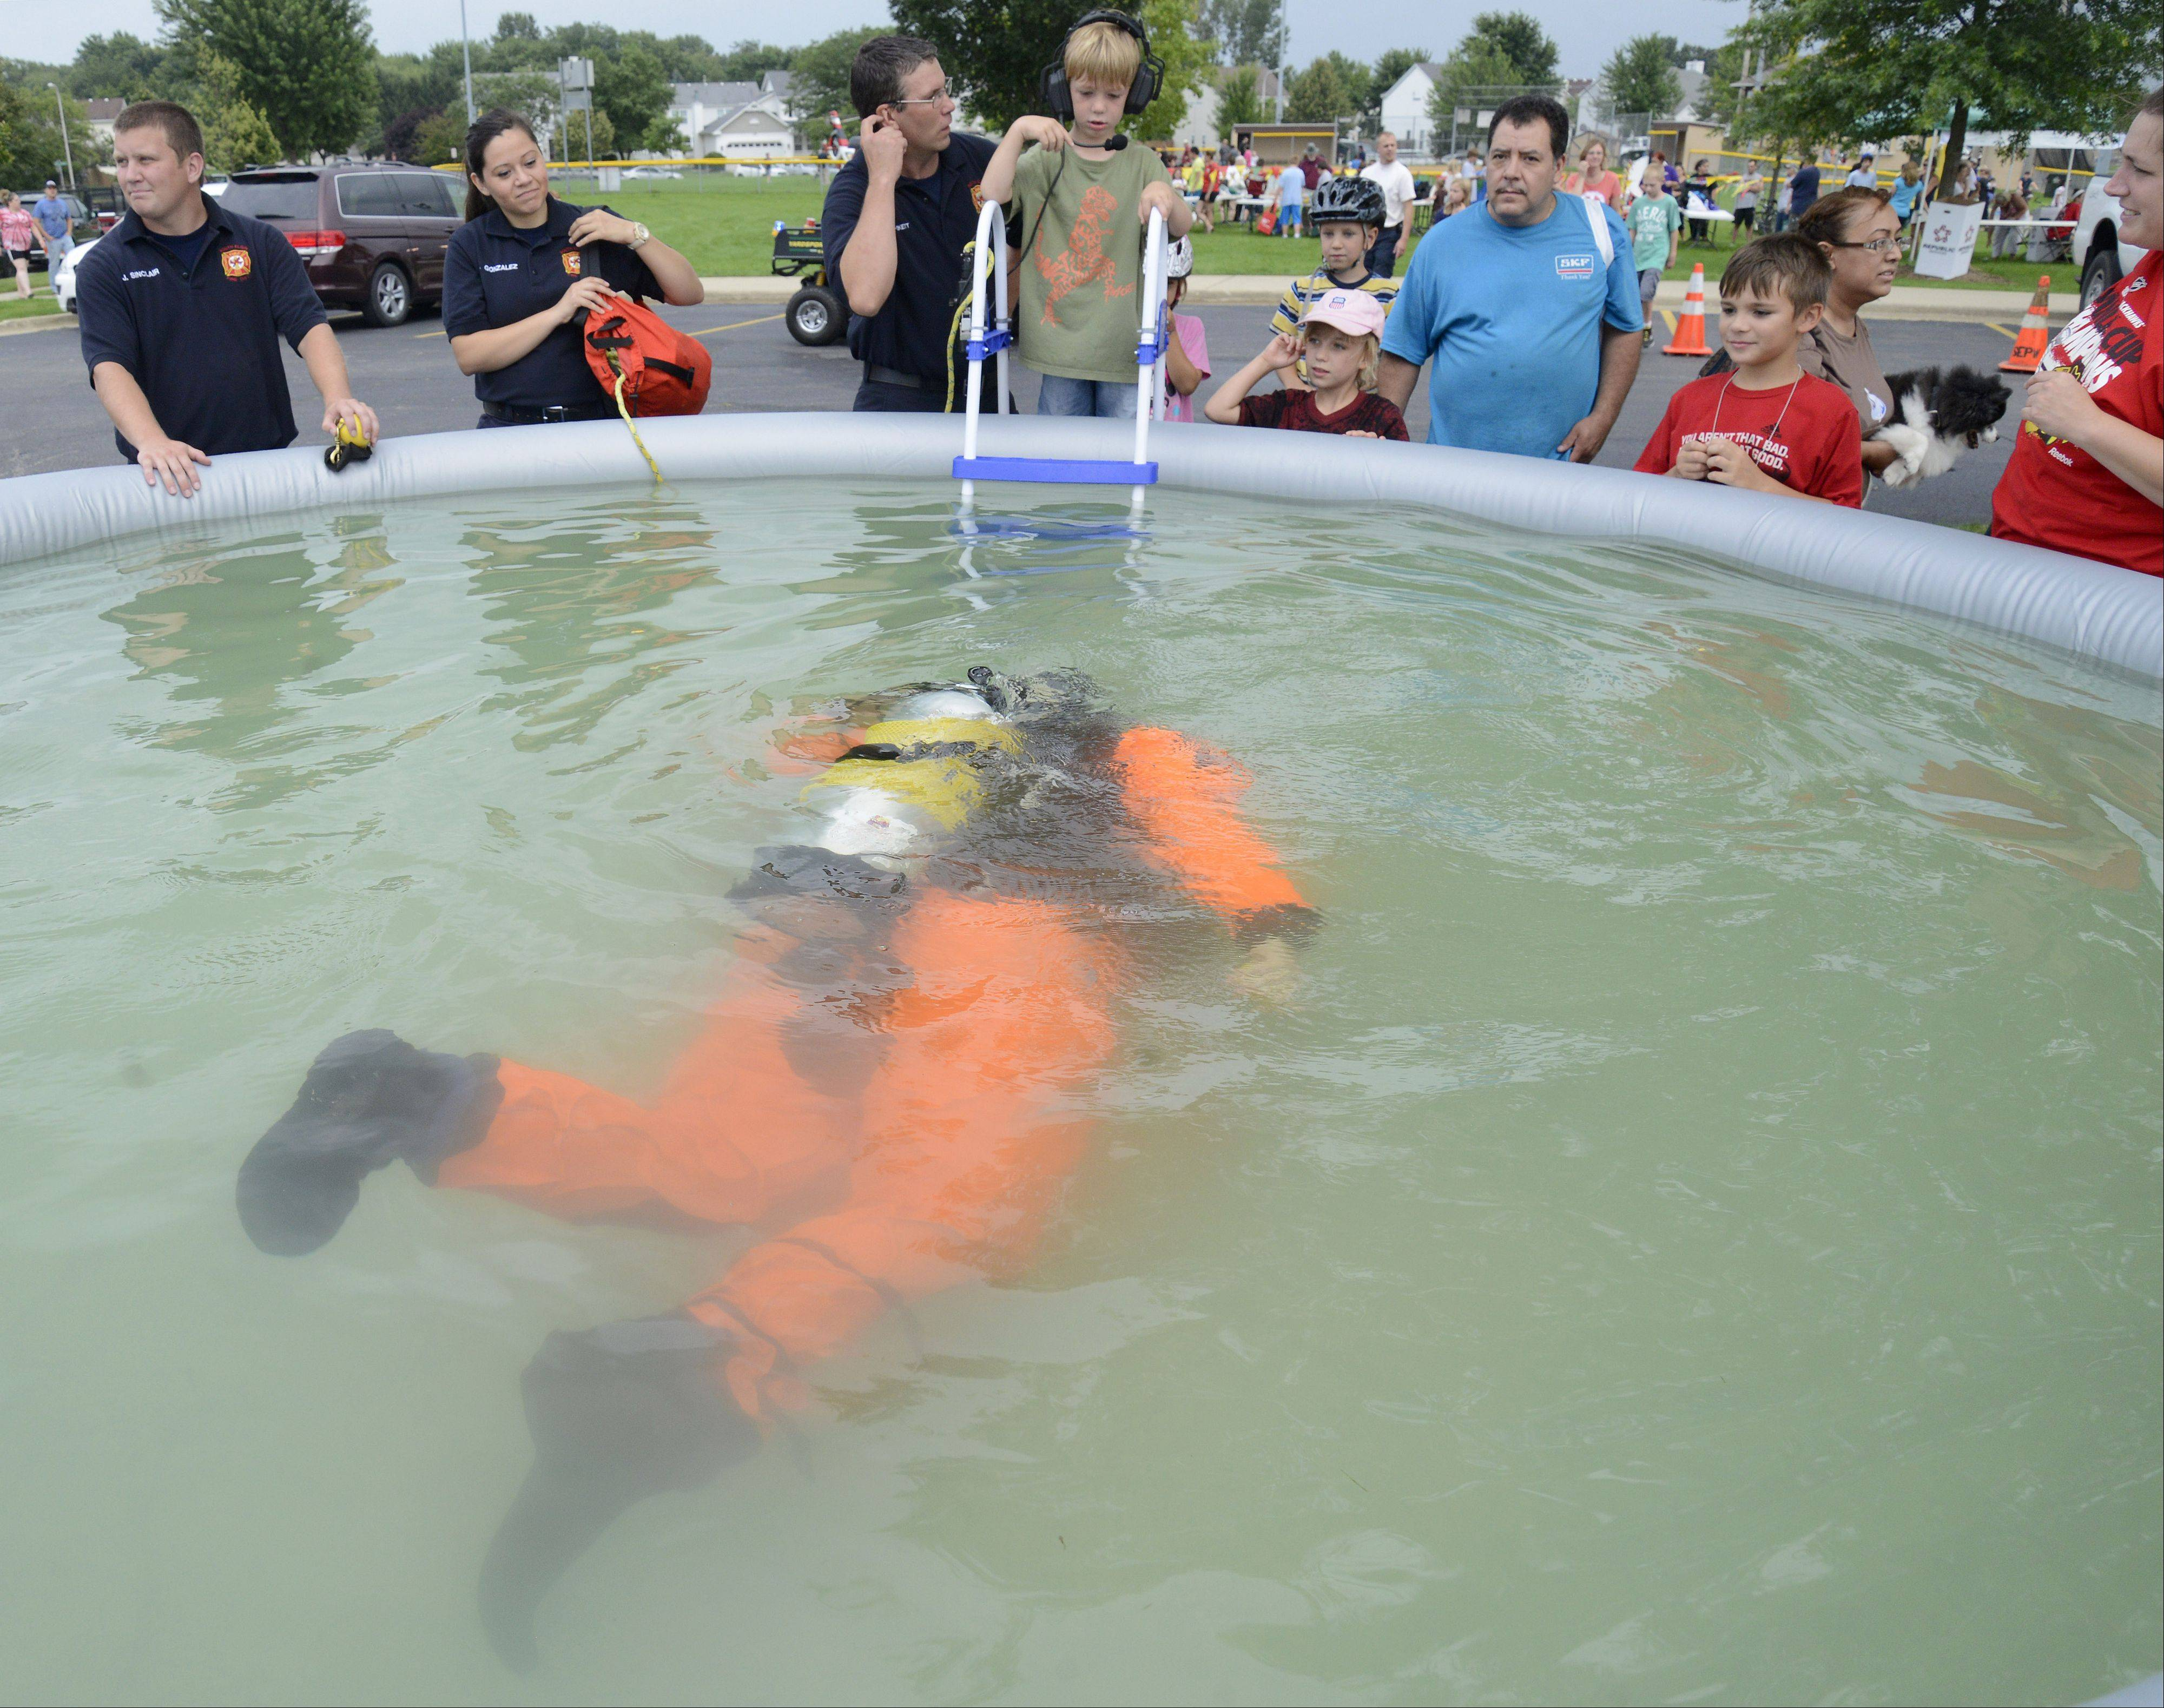 Scott Diehl, a South Elgin fire fighter/paramedic and member of the dive team, brings a retrieved weight from the bottom of the pool to Davin Birkett, 5, and his father, South Elgin fire fighter/paramedic and team diver, Ray Birkett, at South Elgin's National Night Out event in Concord Park on Tuesday, August 6. Davin spoke through a headphone system directing Diehl to find the weight in the cloudy water.